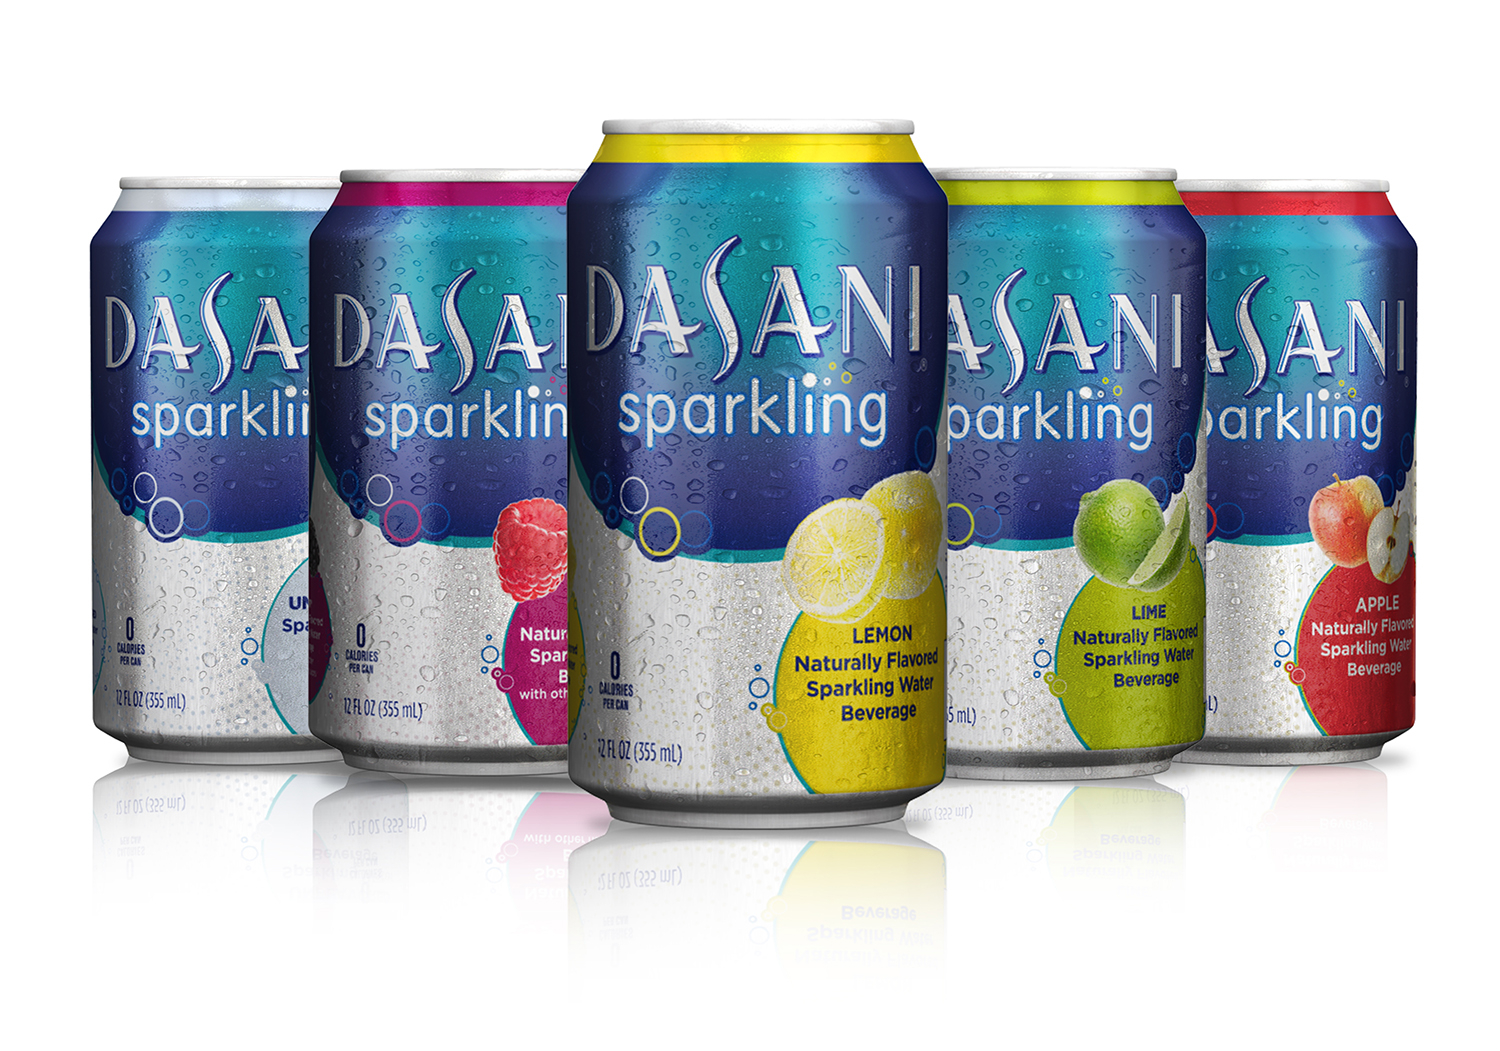 case 10 aspeon sparkling water Carbonated water, malic acid, natural flavors, apple juice concentrate, potassium benzoate (to ensure freshness), fruit and vegetable juice (for color), .